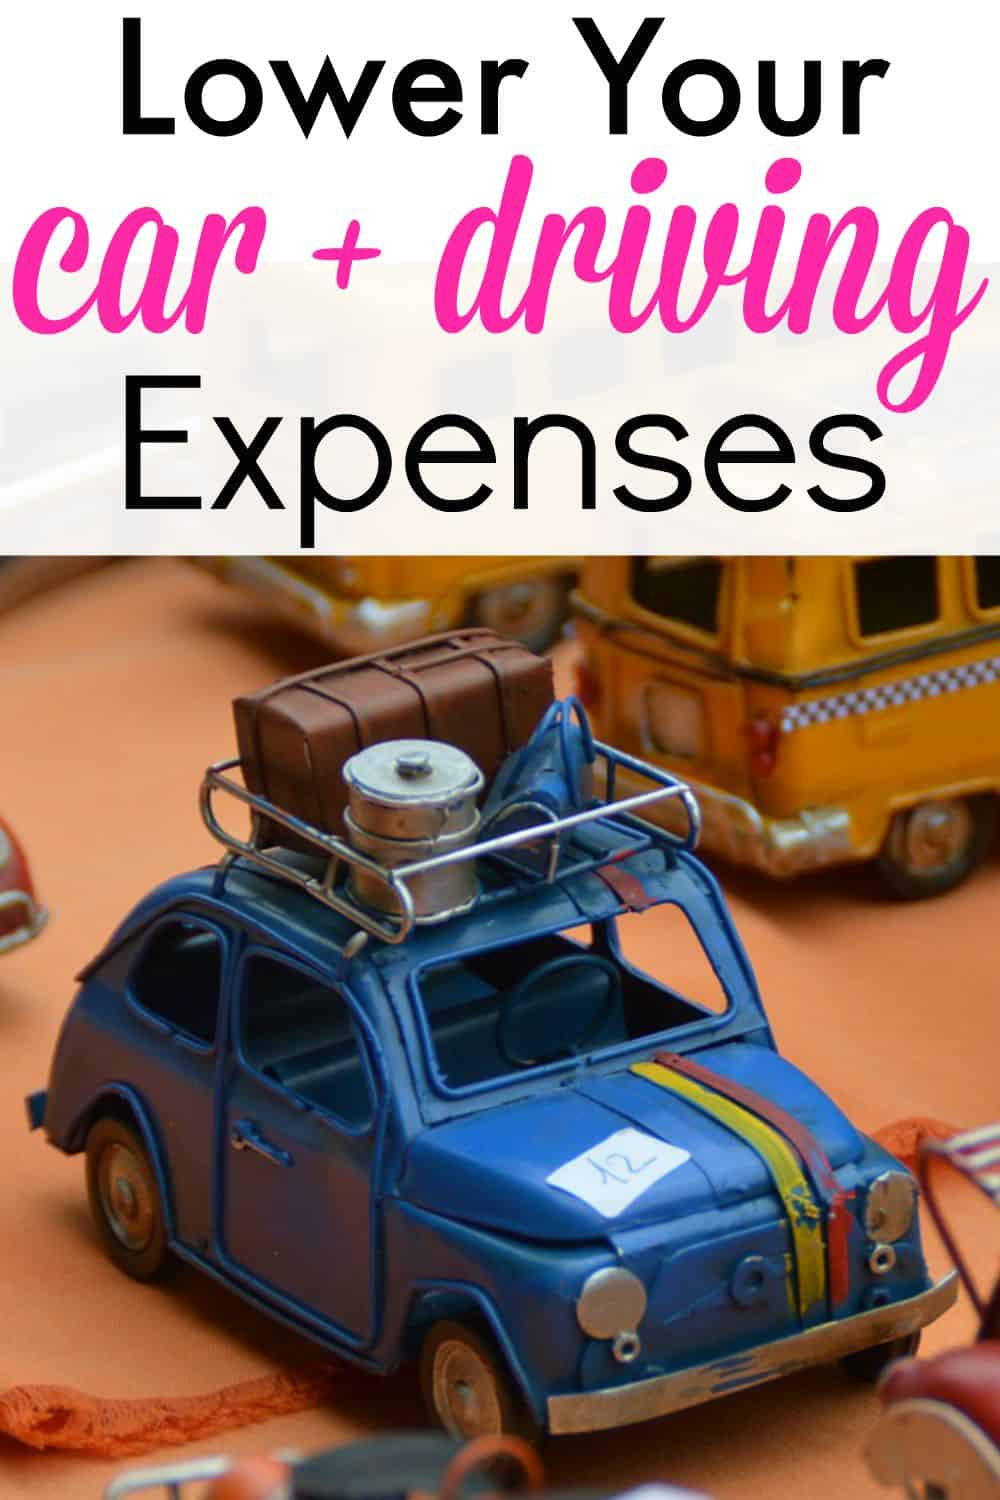 How To Lower Your Car Expenses